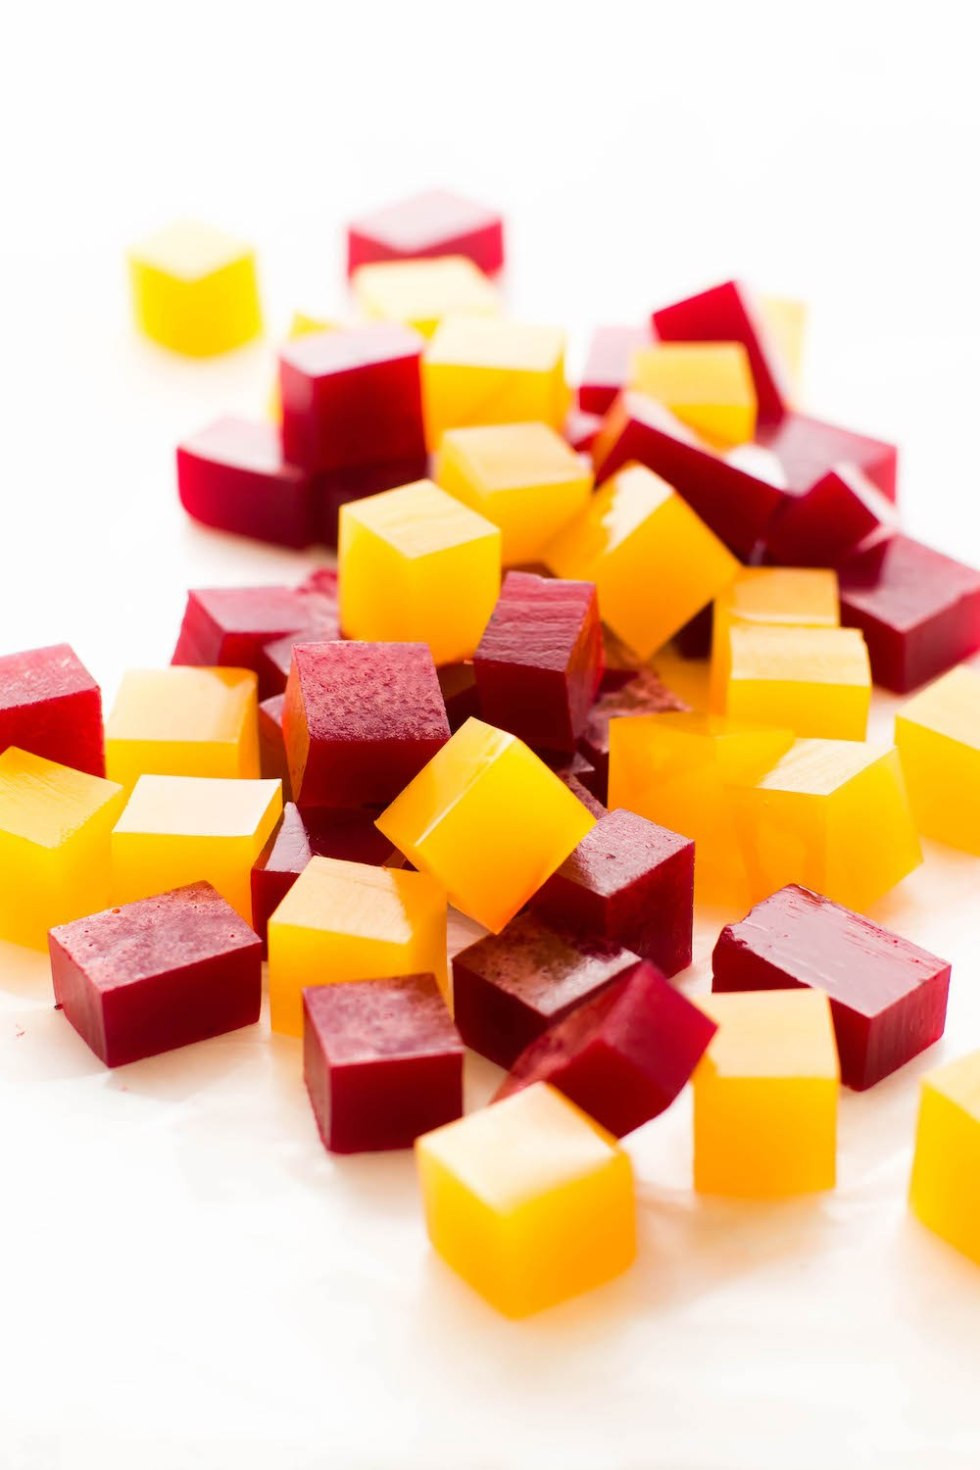 Healthy Fruit Snacks For Adults  Homemade Healthy Vegan Fruit Snacks Feasting on Fruit